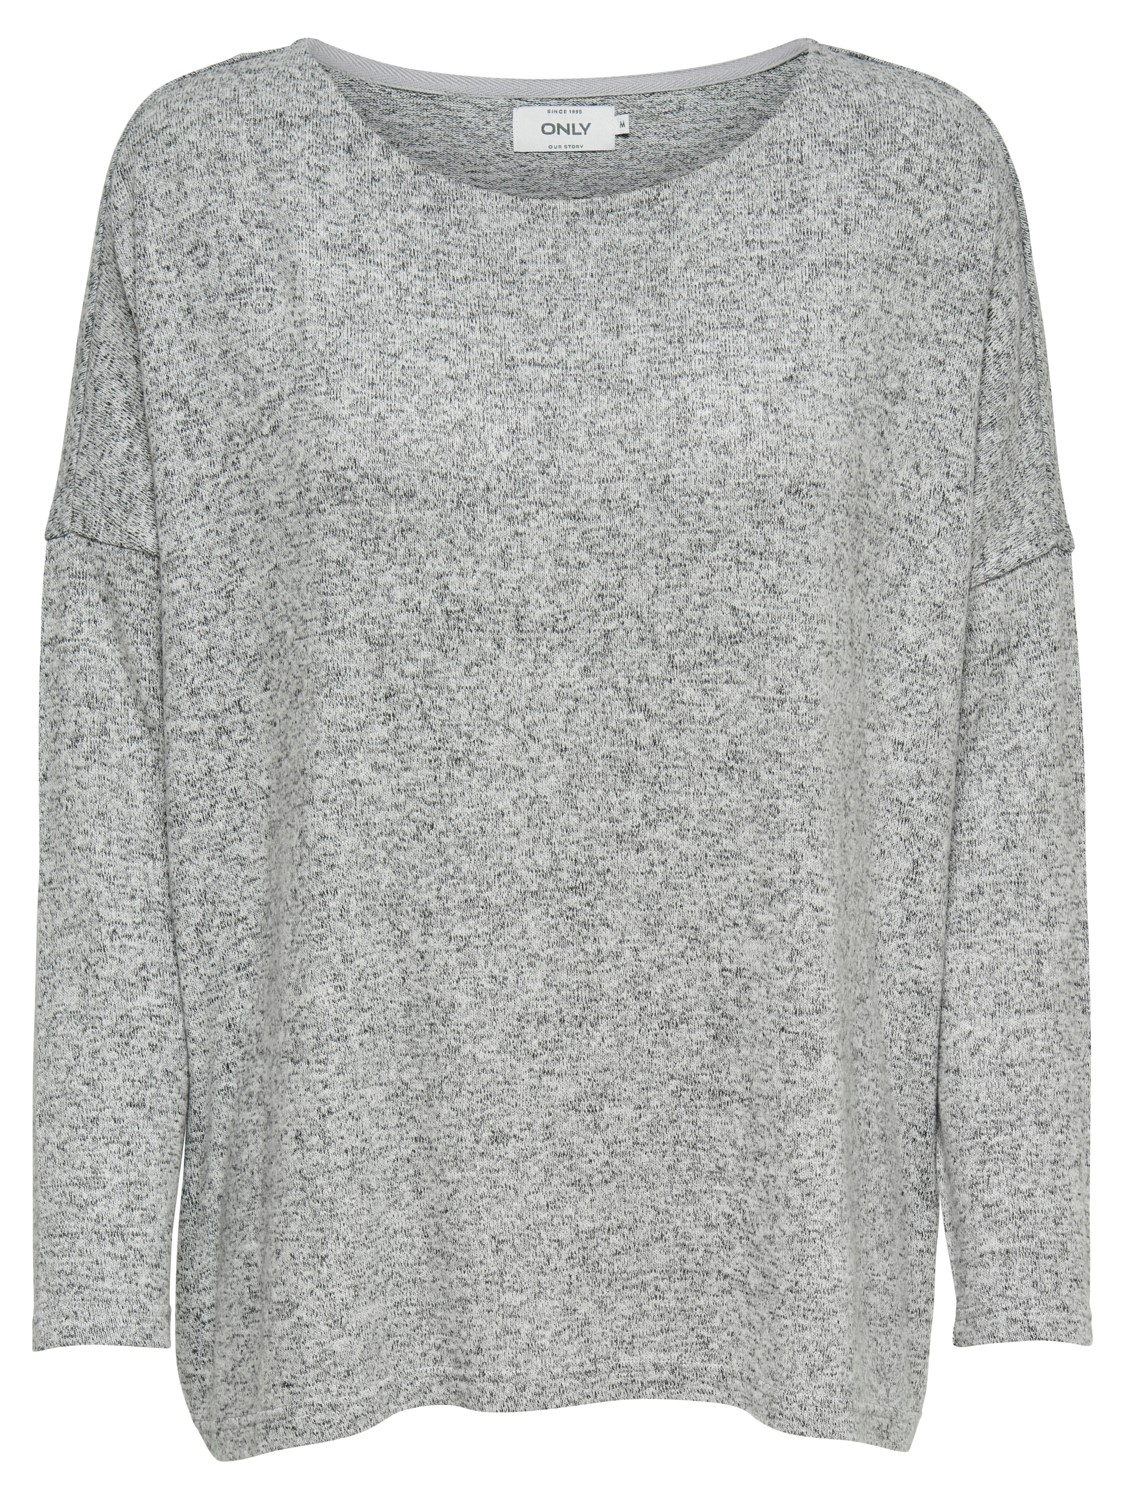 on__2951450__front